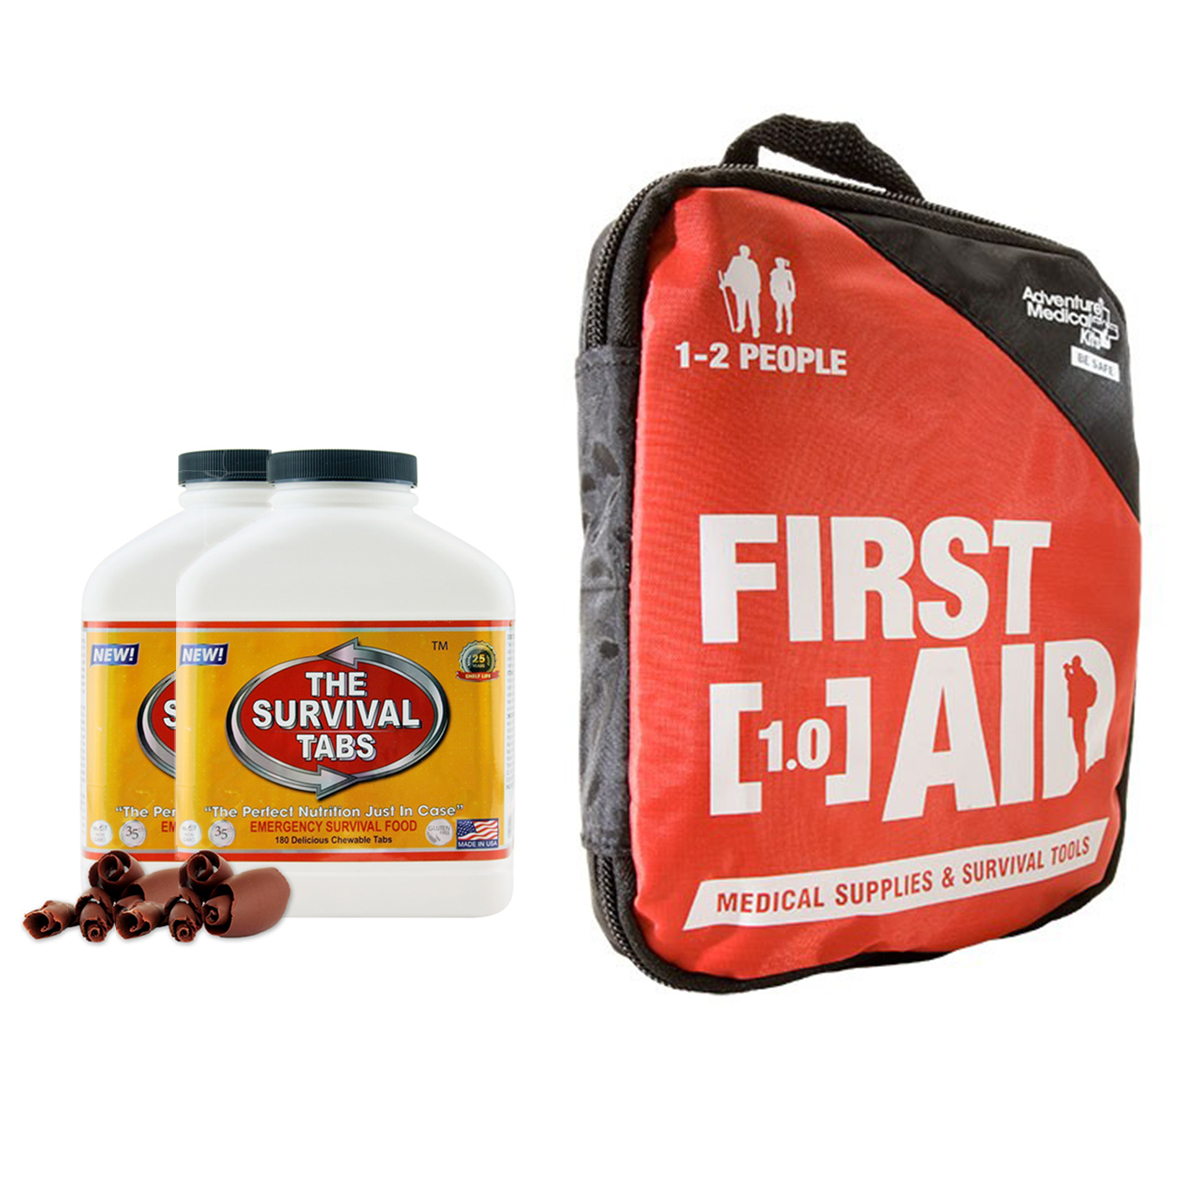 Adventure First Aid 1.0 constant treat for cut sprains insect bites headaches muscle aches, allergic reactions (Kit for 1-2 people) + Survival tabs 30 days Emergency food (360 Tabs/Chocolate)